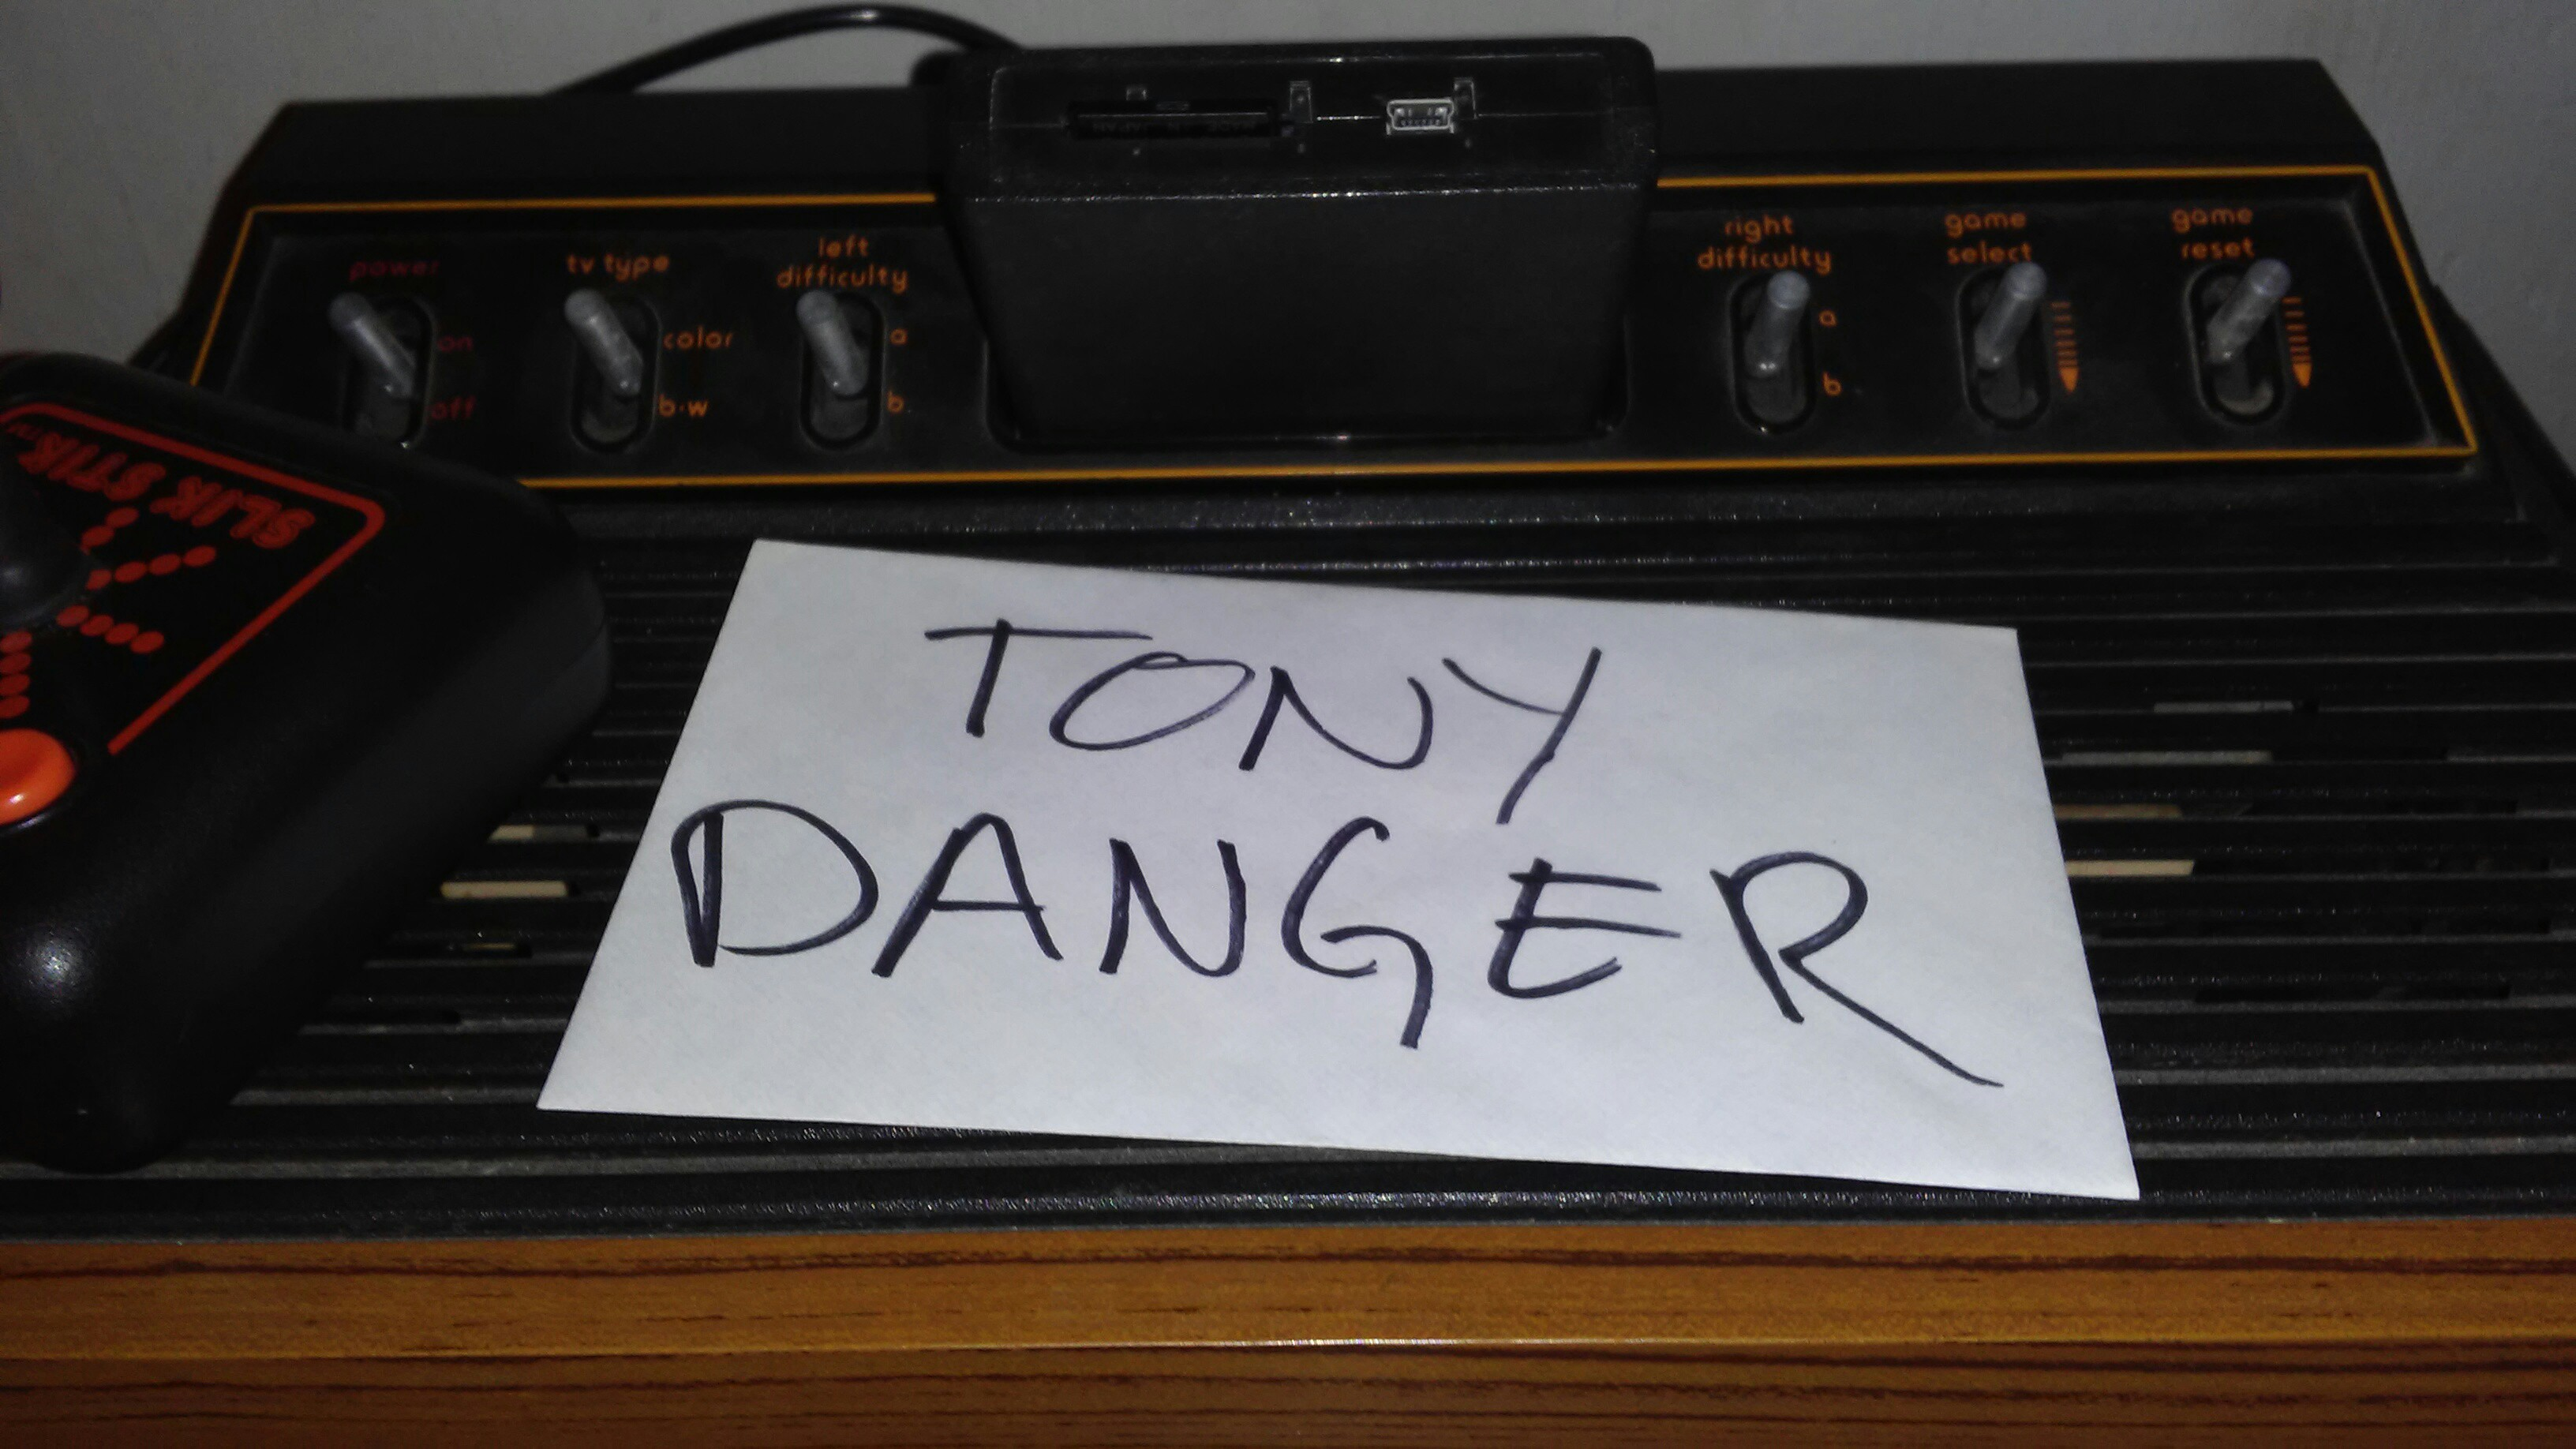 TonyDanger: Plaque Attack (Atari 2600 Expert/A) 45,685 points on 2017-01-11 23:31:09